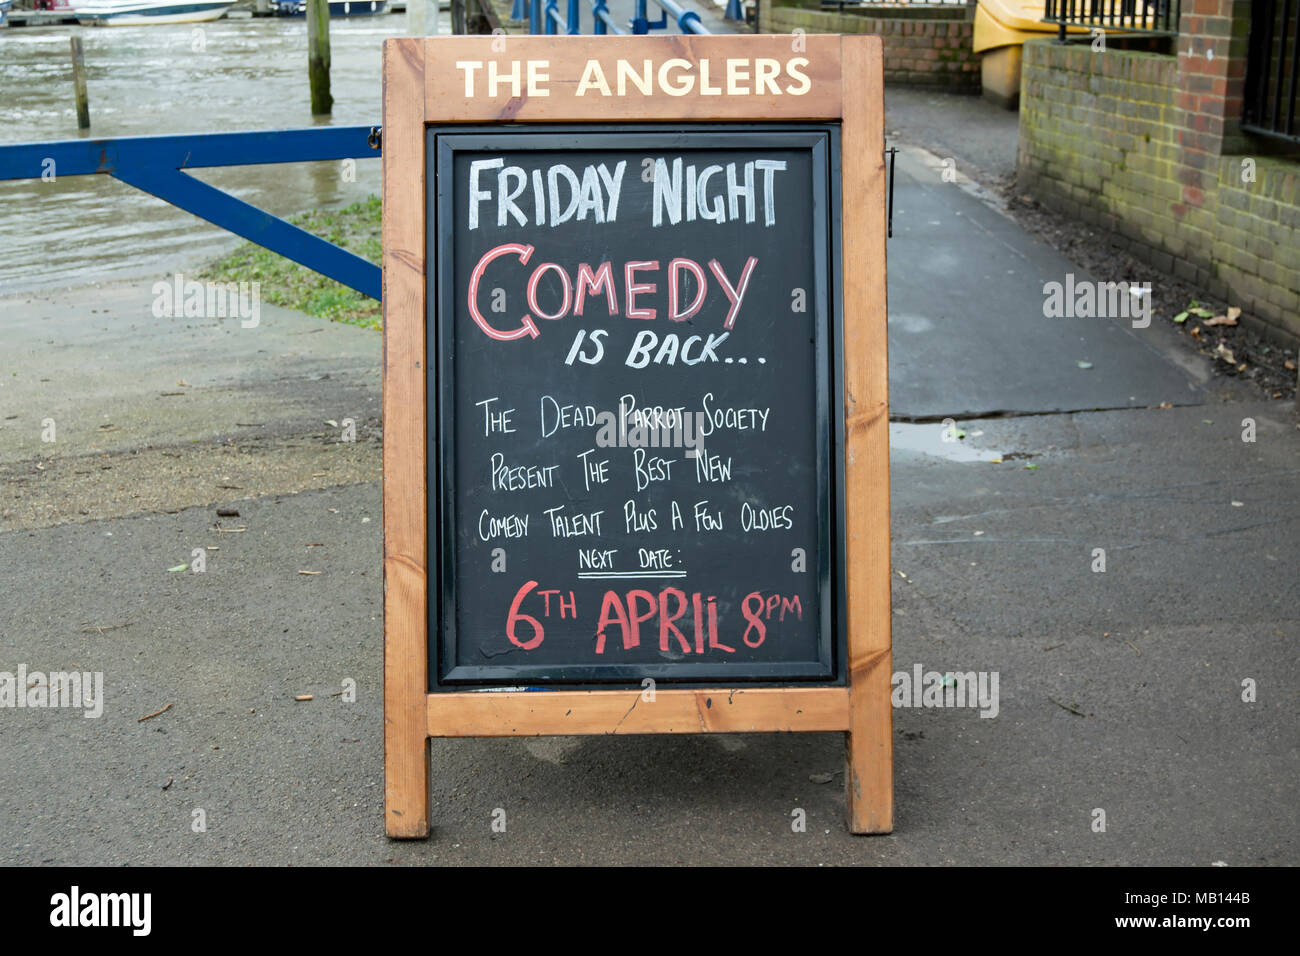 information board advertising a friday comedy night at the anglers pub,  teddington, middlesex, england Stock Photo